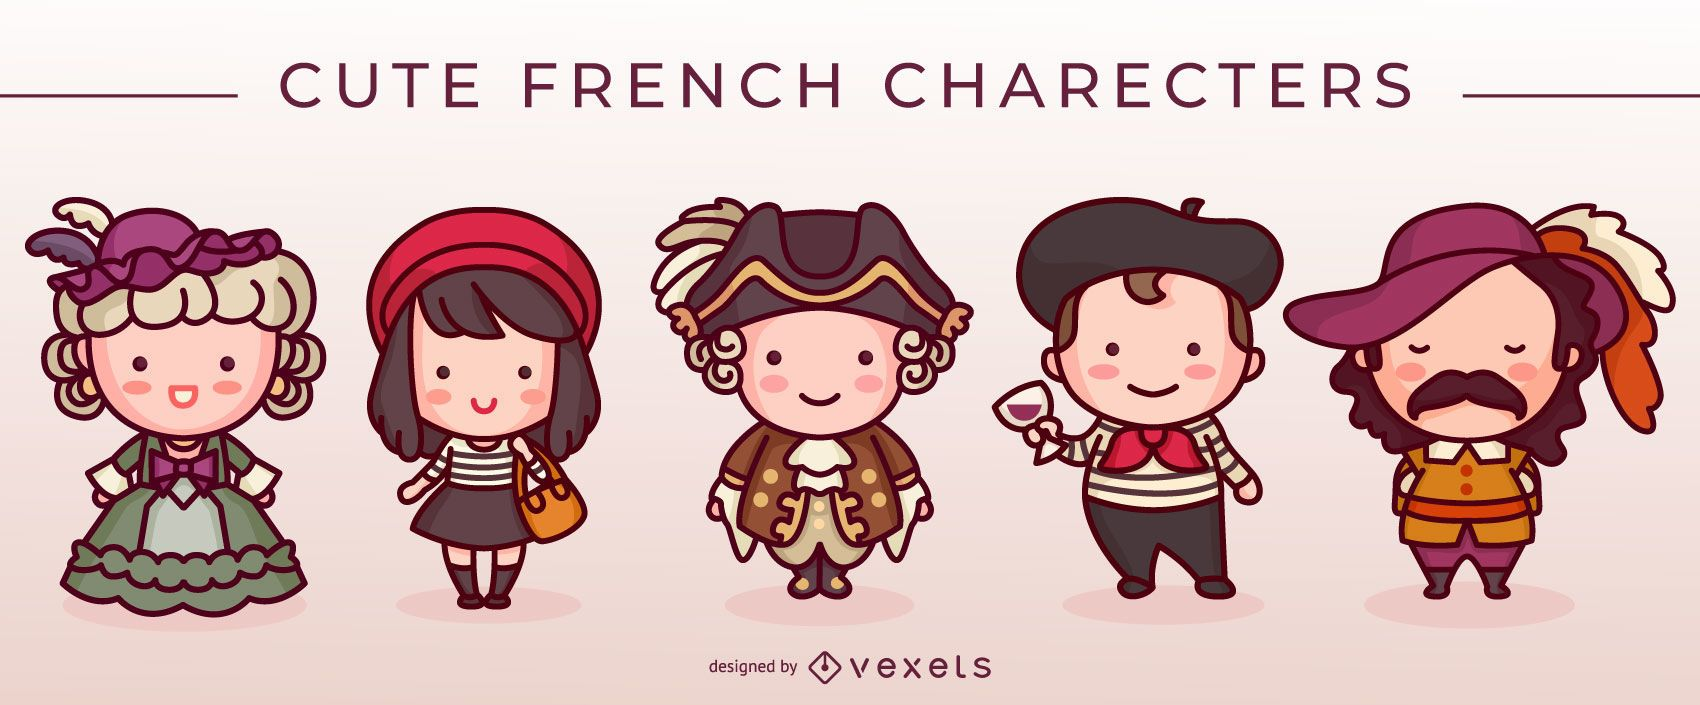 Cute french characters set